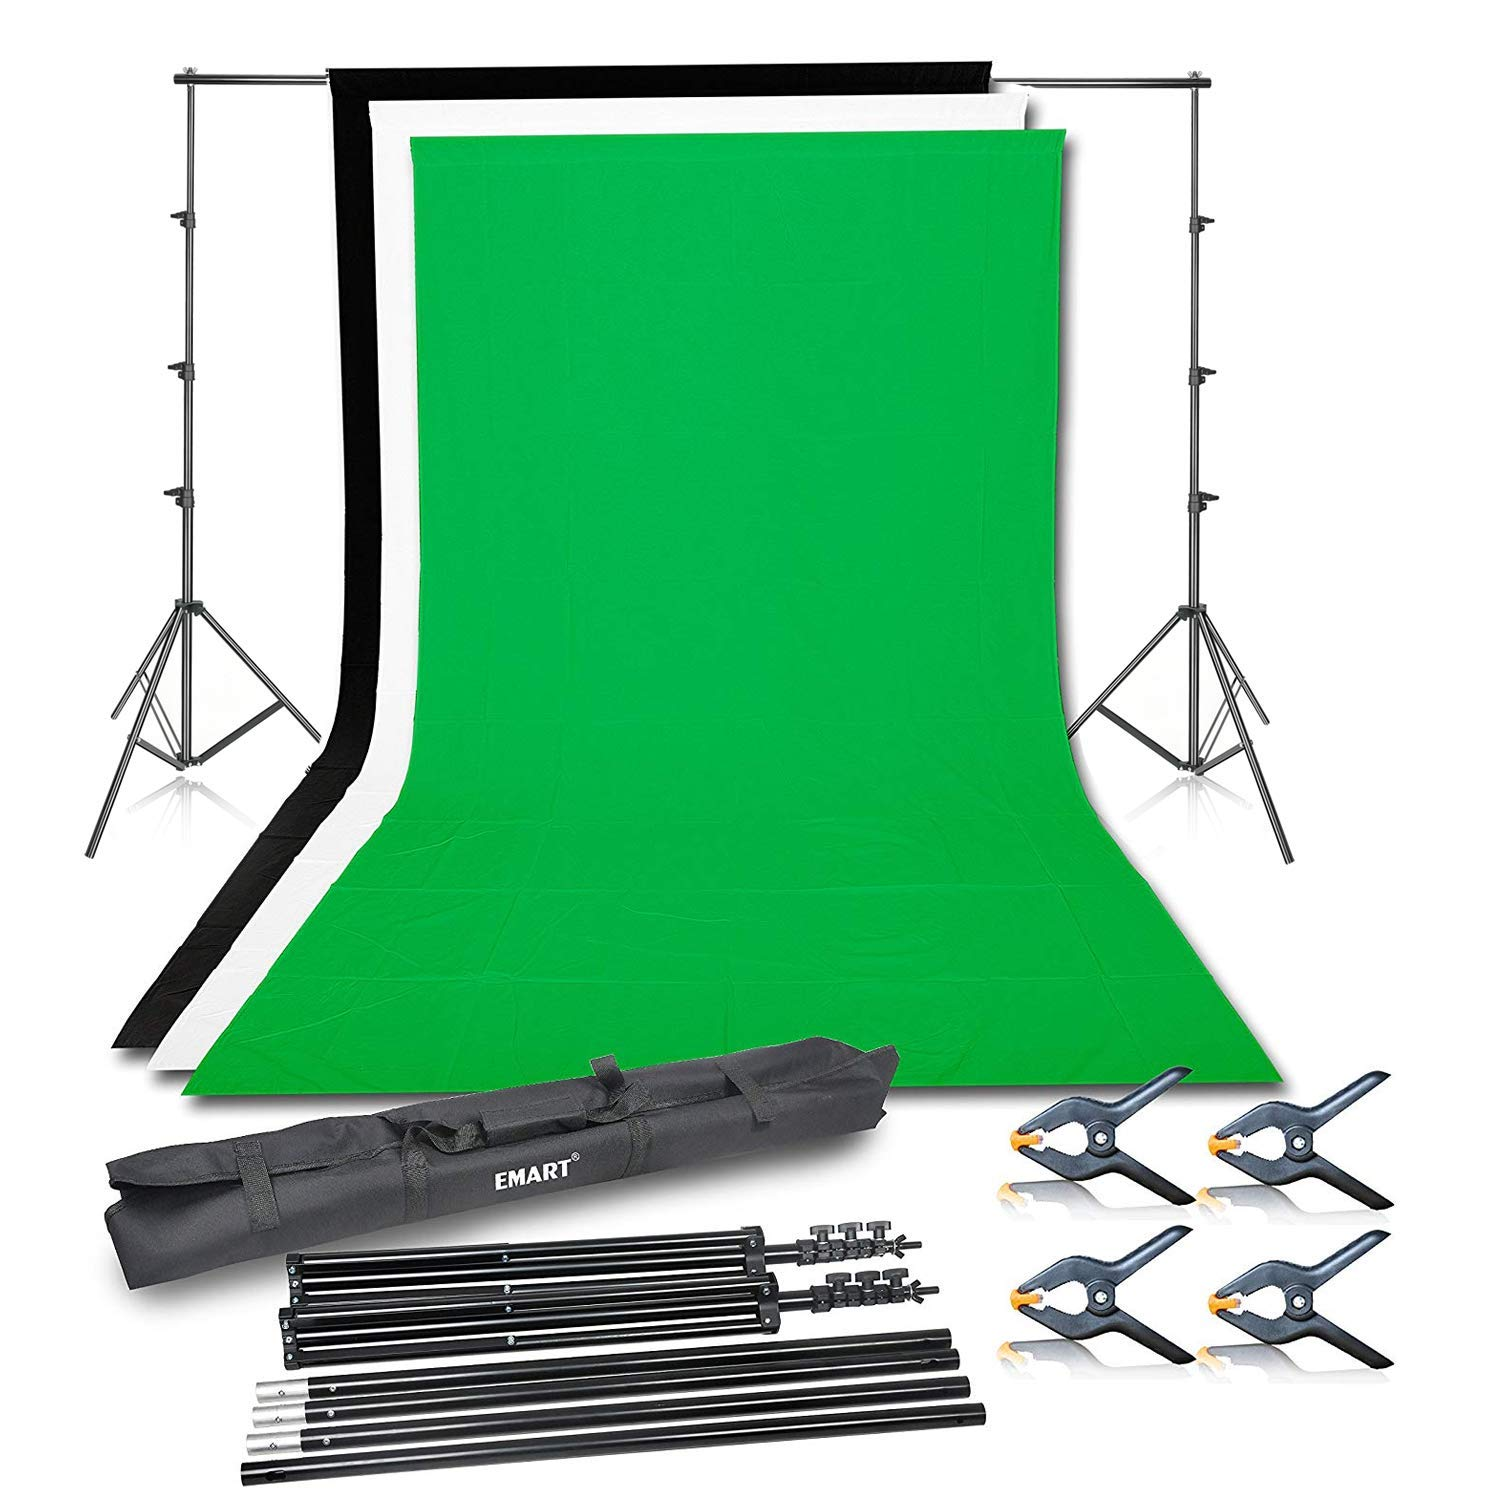 Emart Photo Video Studio Background Backdrop Stand Kit, 8.5x10ft Photography Support System with 3 Muslin Backdrops 100% Cotton (Black White Green) by EMART